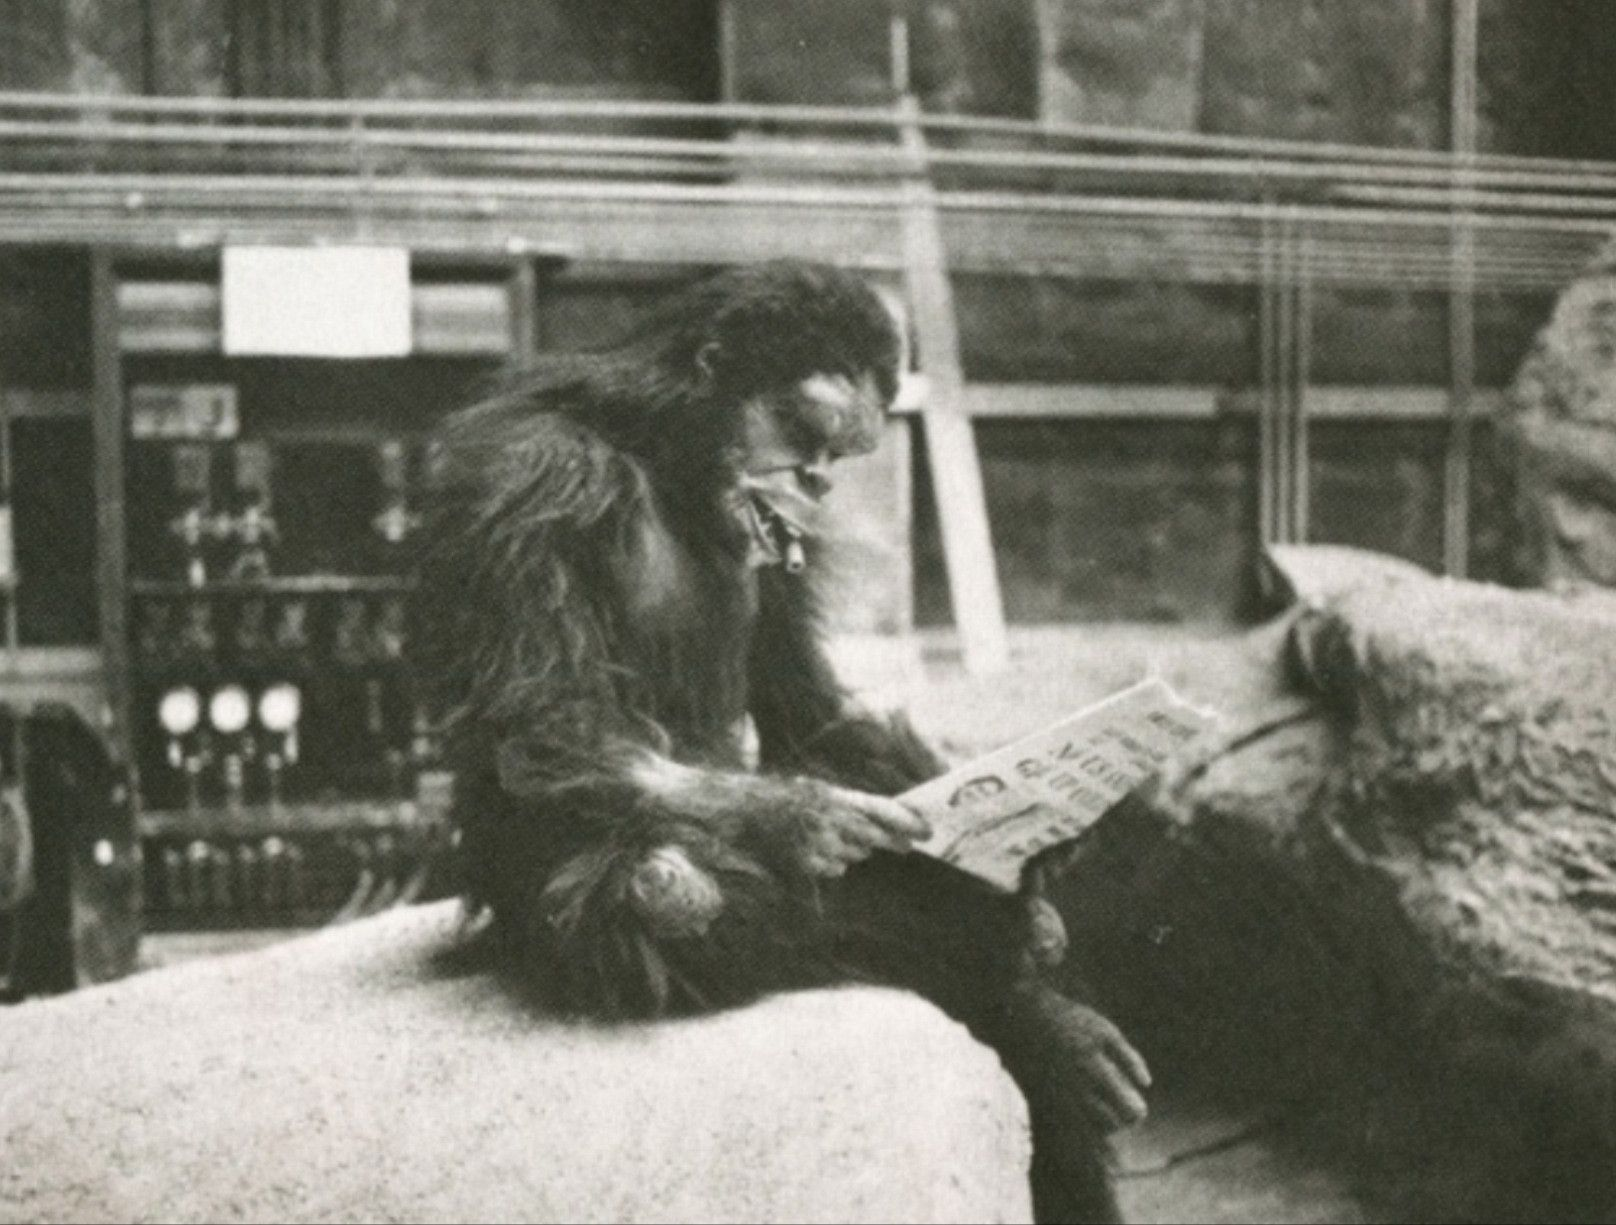 Actor In Ape Costume Enjoying The Paper Backstage Of 2001 A Space Odyssey 1960 S Iconic Movies Scene Photo Movie Photo